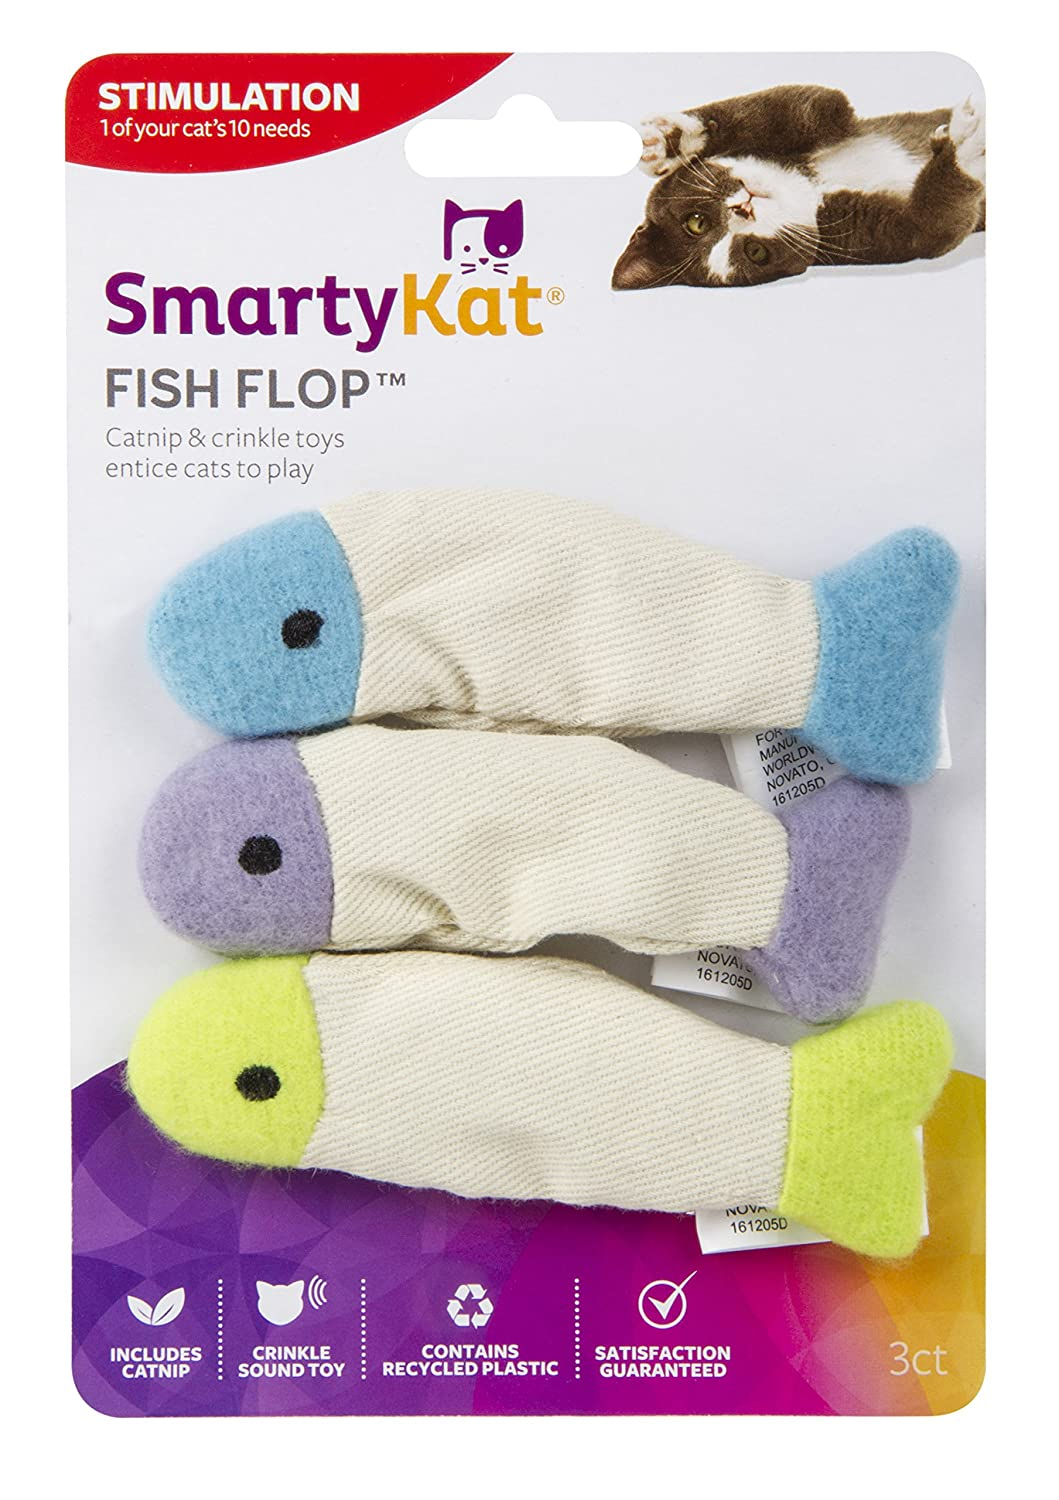 3 Toys per Package SmartyKat Fish Flop Cat Toy Catnip Crinkle Toys